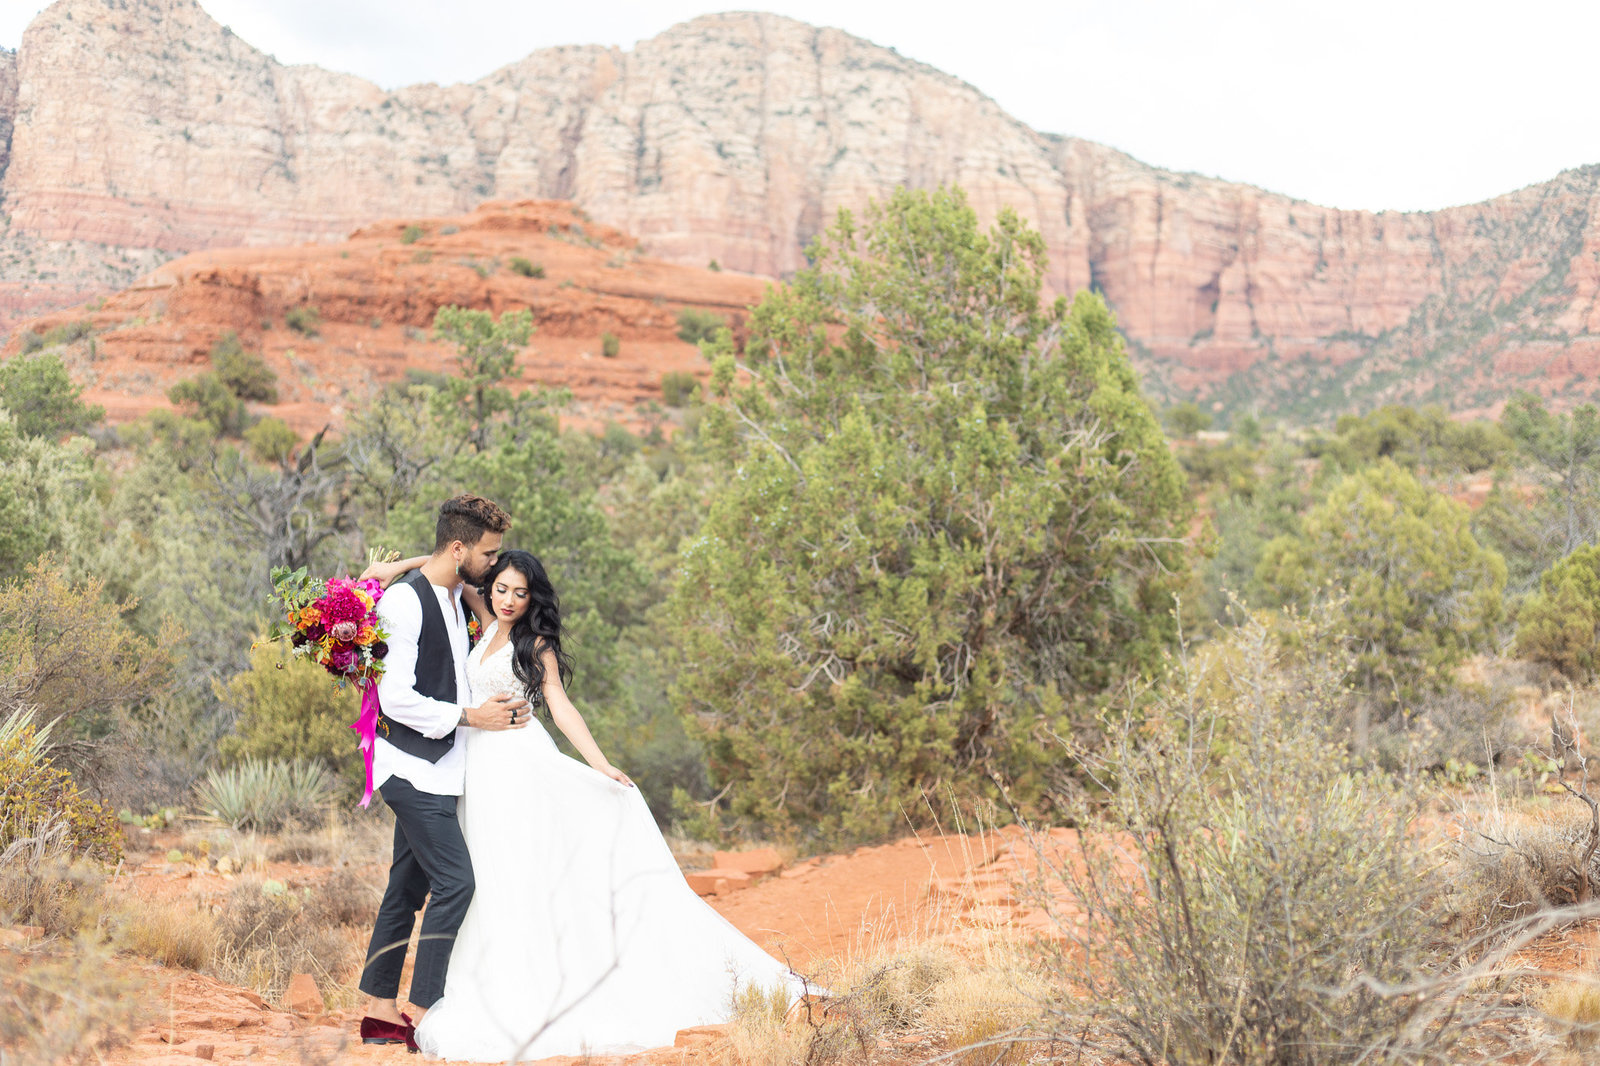 Spanish Wedding in Sedona